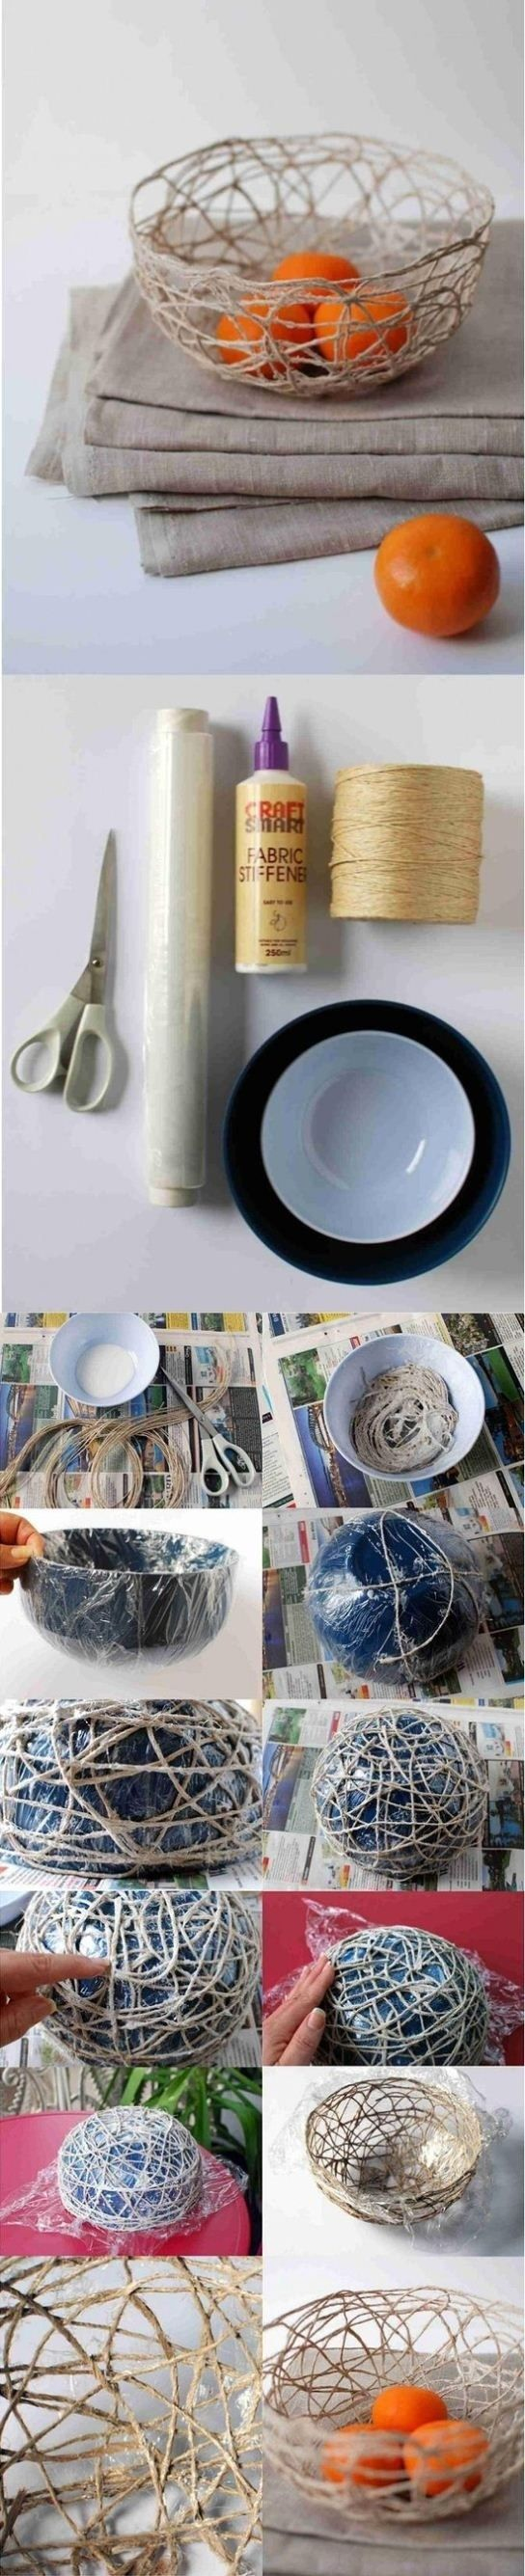 Creative And Useful Popular DIY Idea